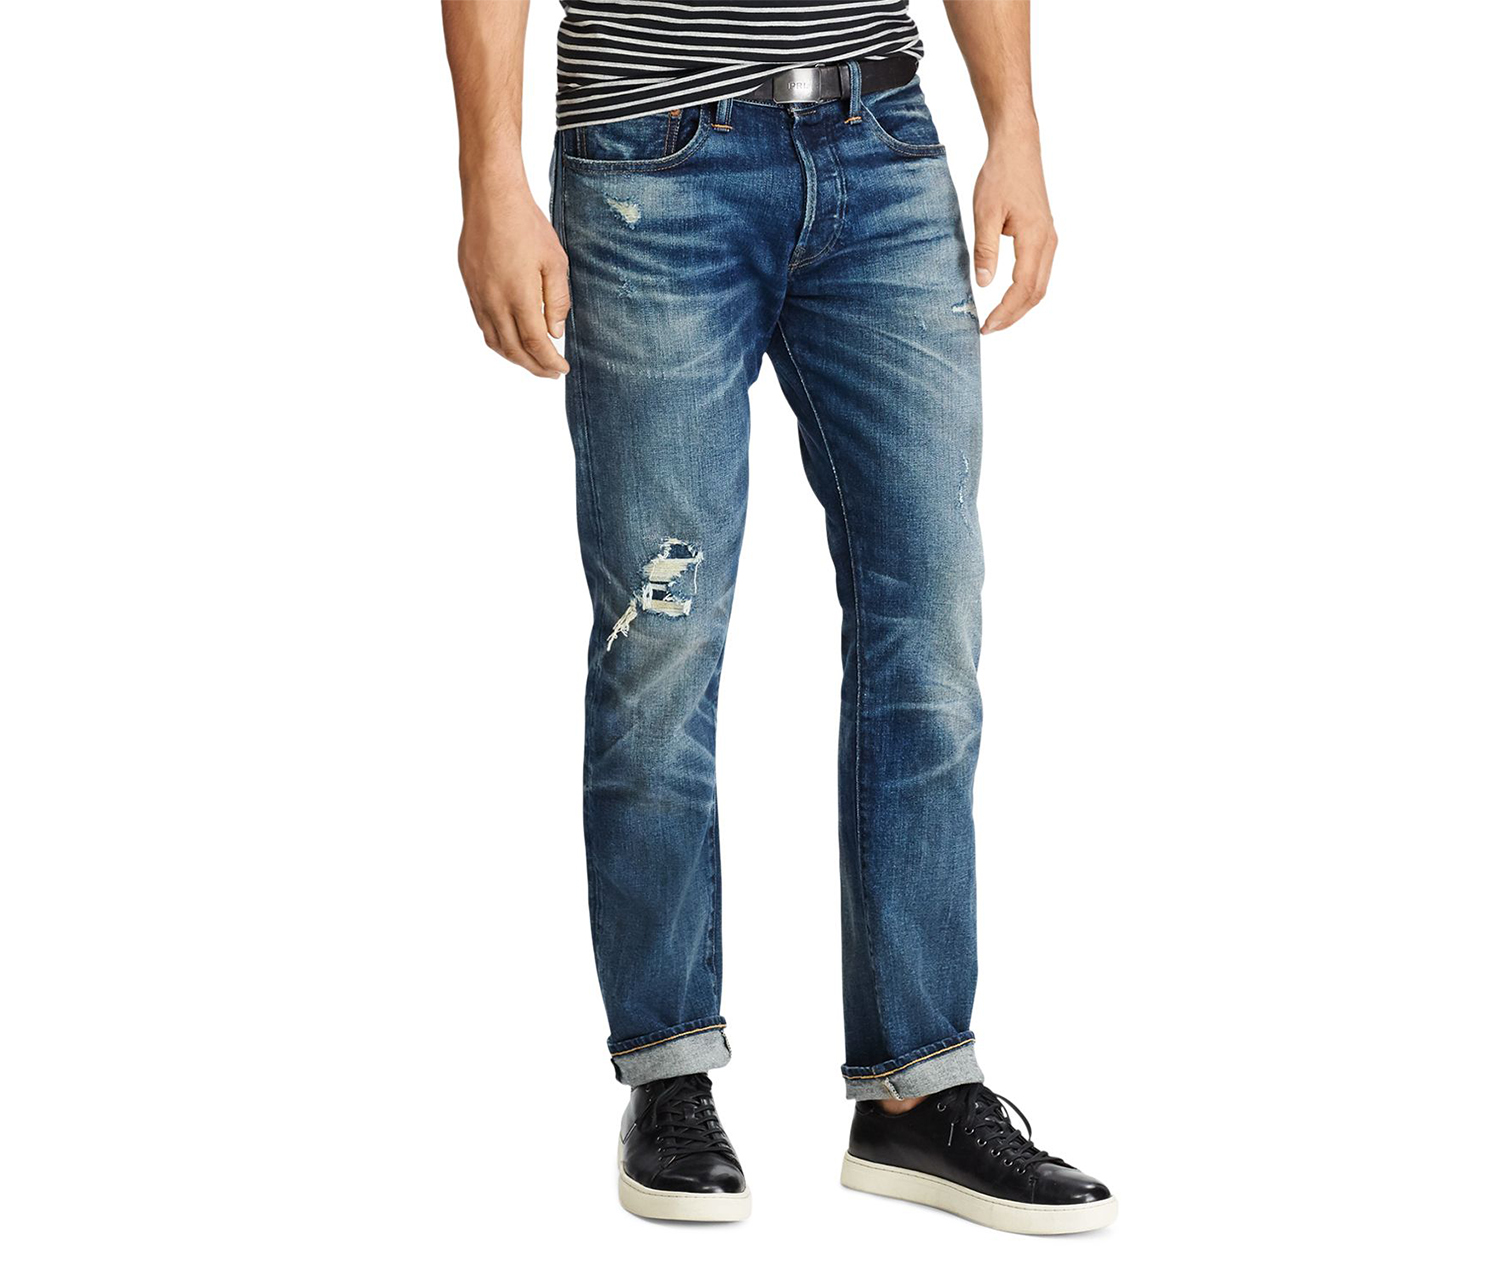 8d075b554 Shop Ralph Lauren Polo Ralph Lauren Men s Varick Slim Straight Jeans ...